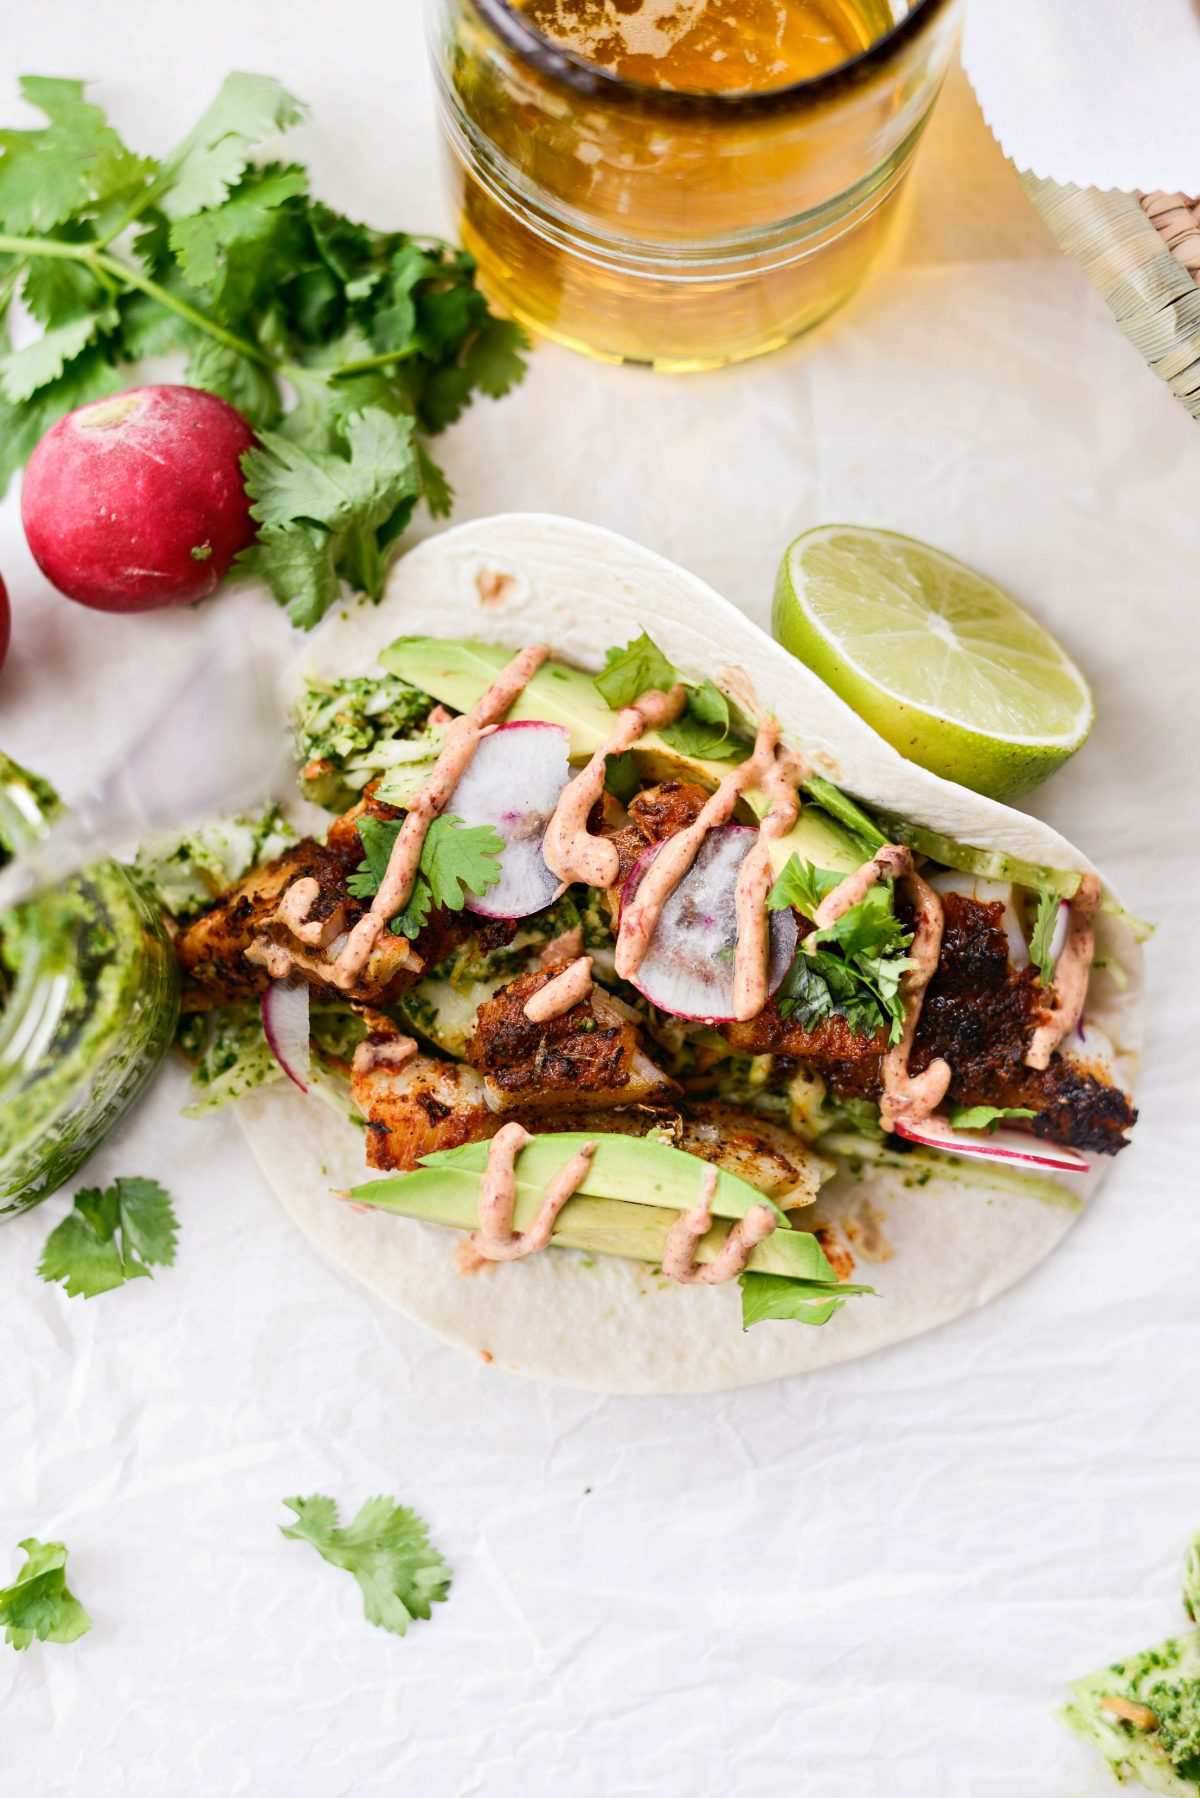 Blackened Fish Tacos with Cilantro Pesto Slaw l SimplyScratch.com #blackened #fish #tacos #cod #cilantroslaw